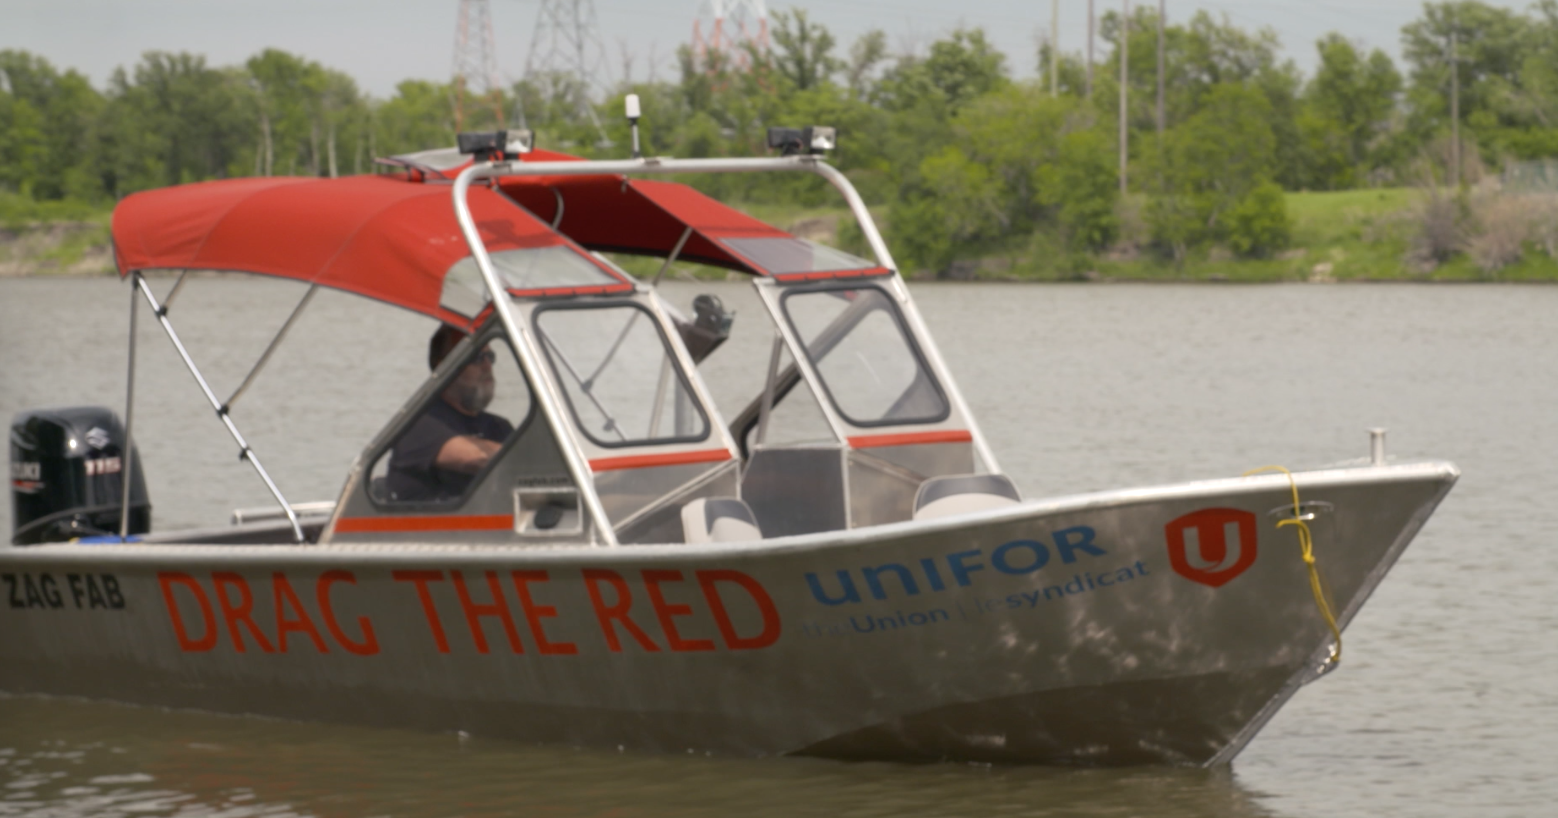 Video screenshot of an aluminum boat with a red canopy on the Red River. The boat says Drag the Red on the side and has a Unifor logo on the hull.